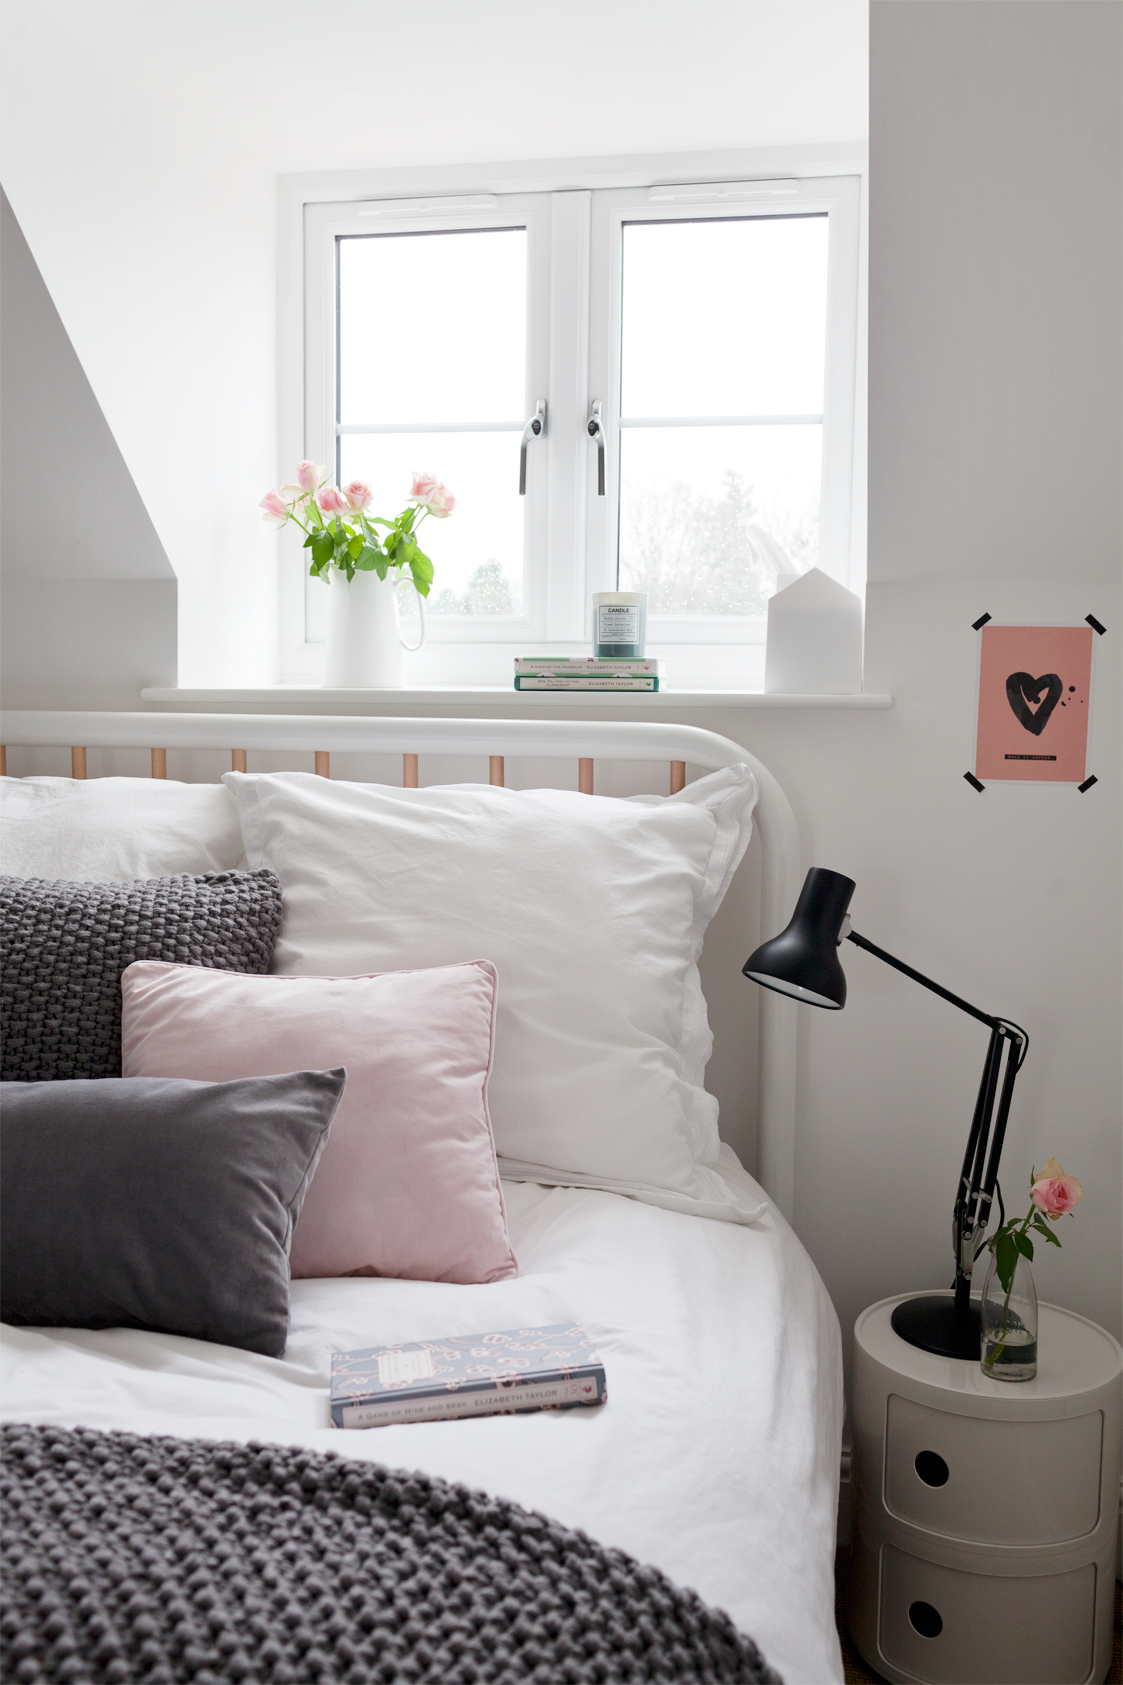 Image by Kasia Fiszer of Flora Mountford's home